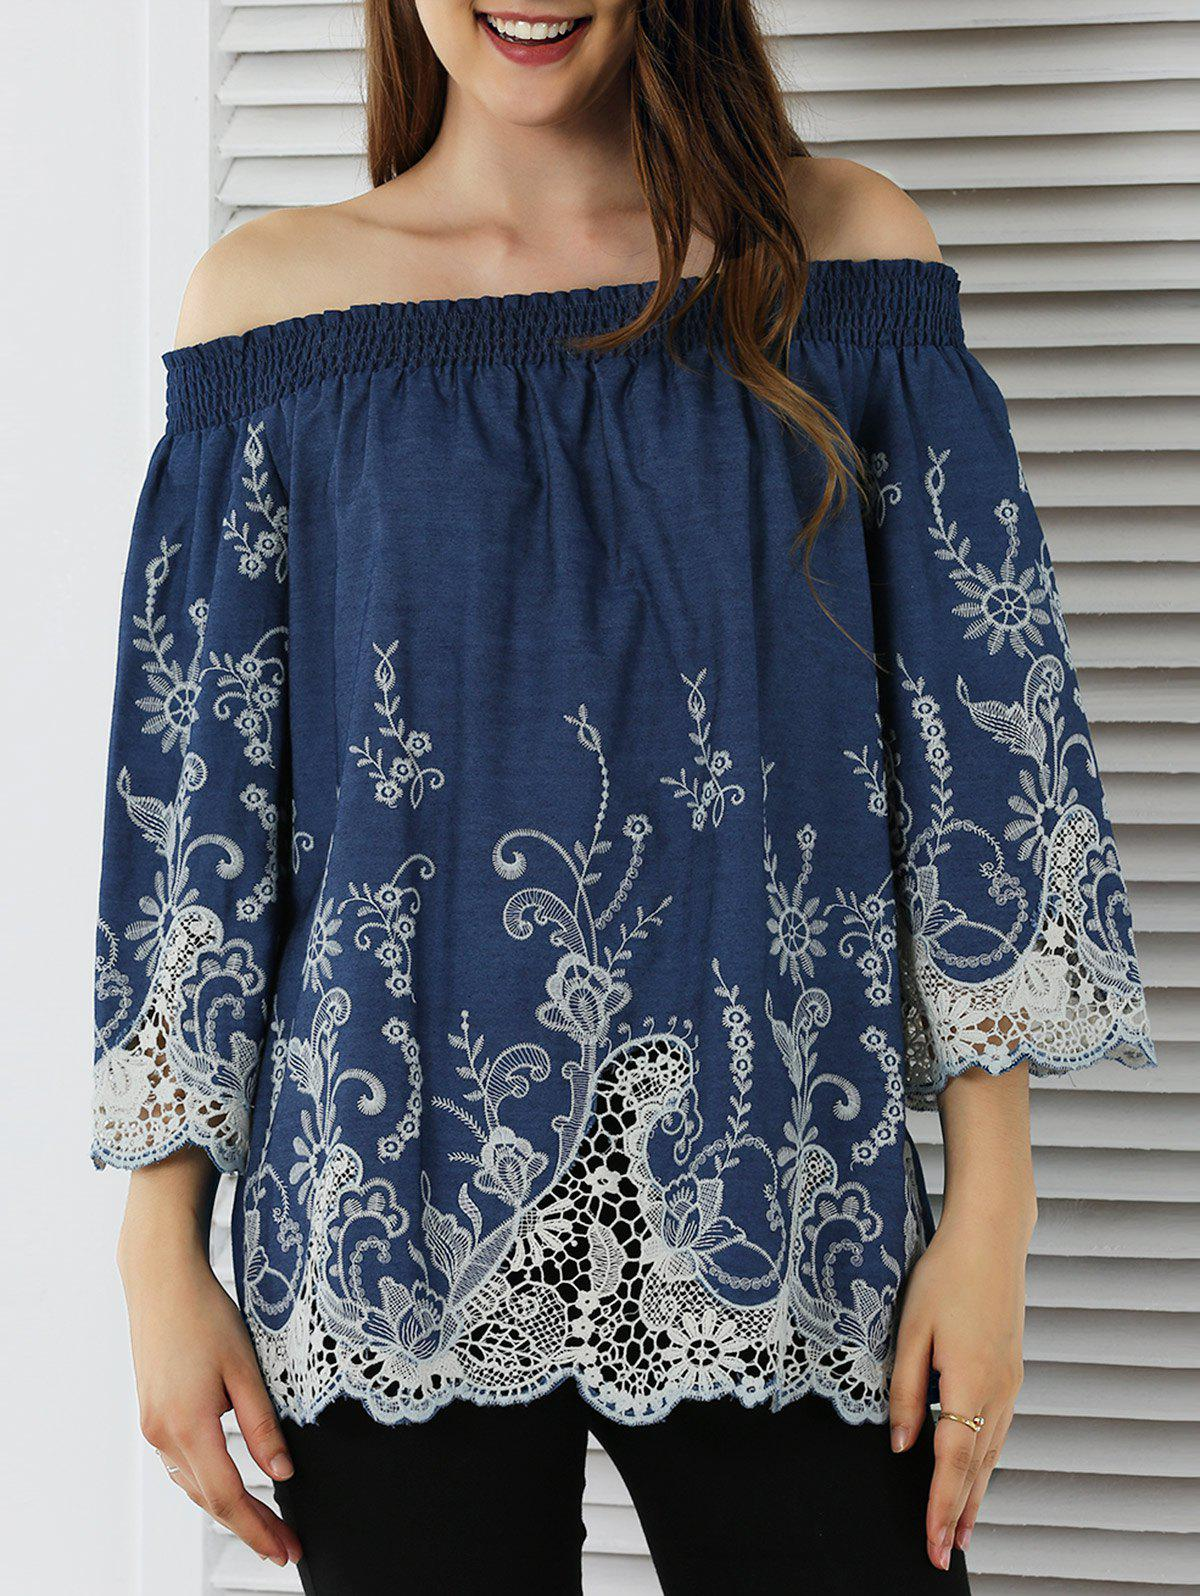 Sweet Off-The-Shoulder Lace Splicing Blouse